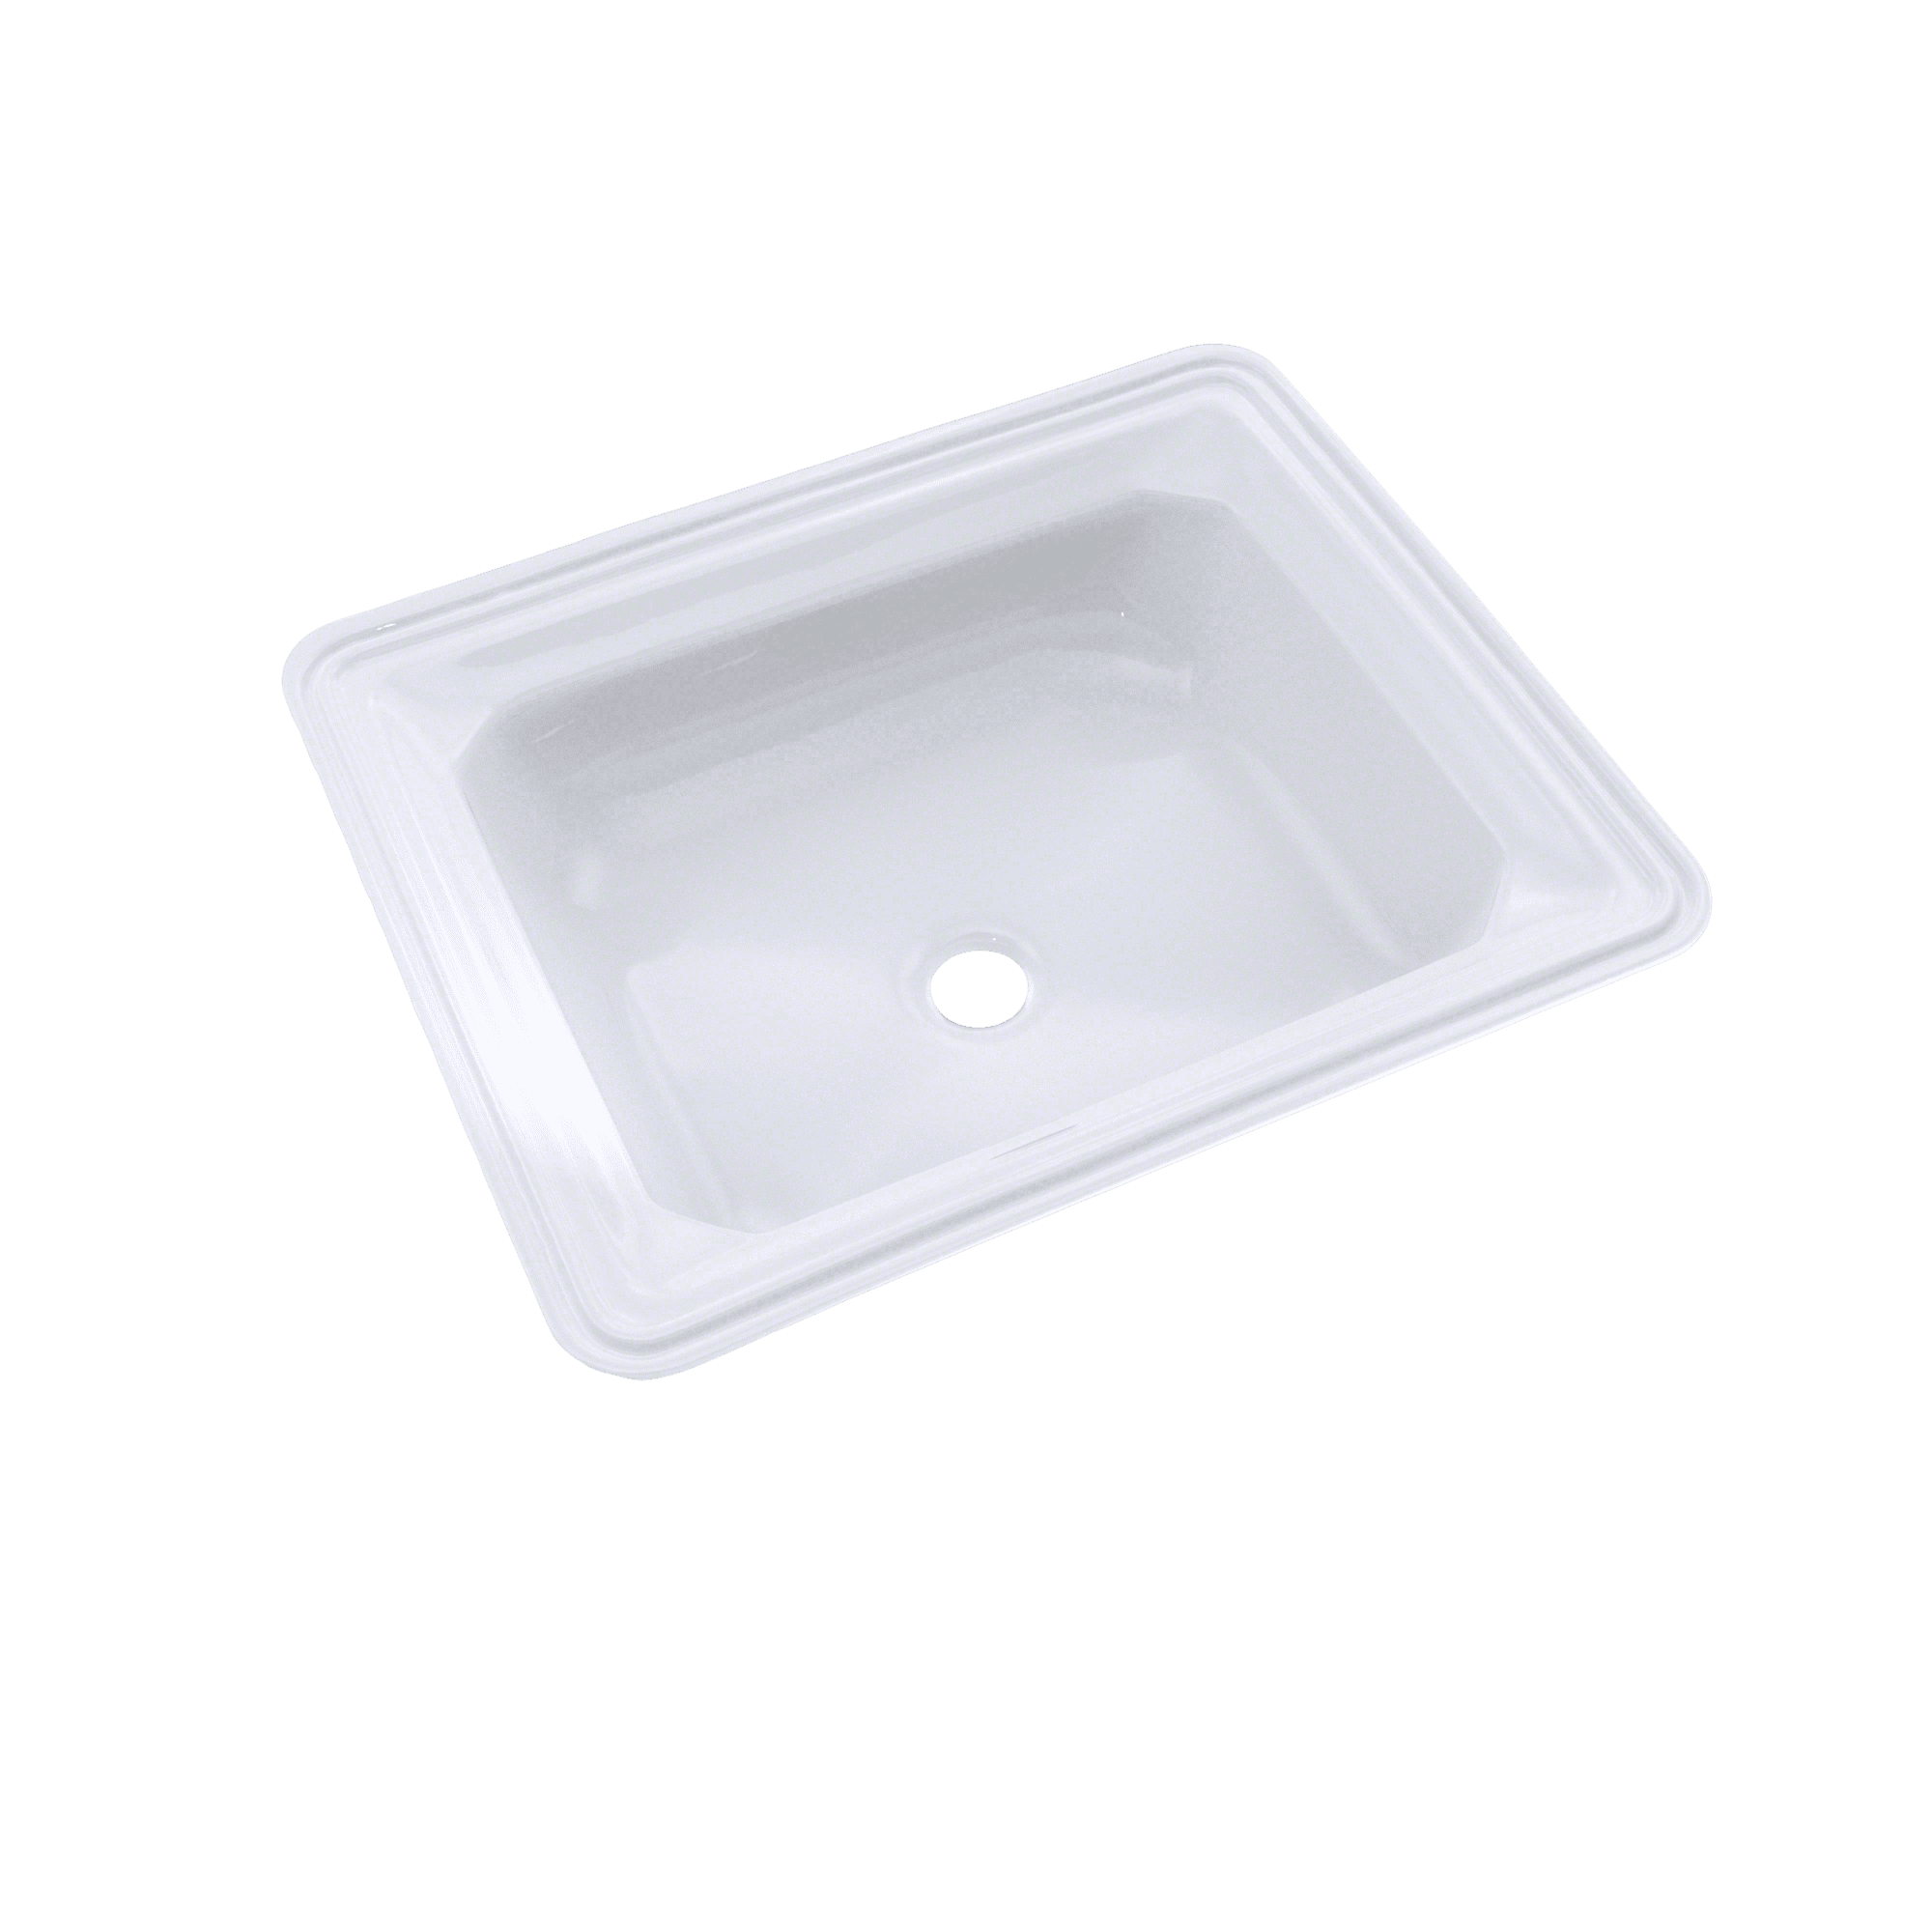 Toto guinevere rectangular undermount bathroom sink with cefiontect cotton white lt973g 01 for Toto undermount bathroom sink